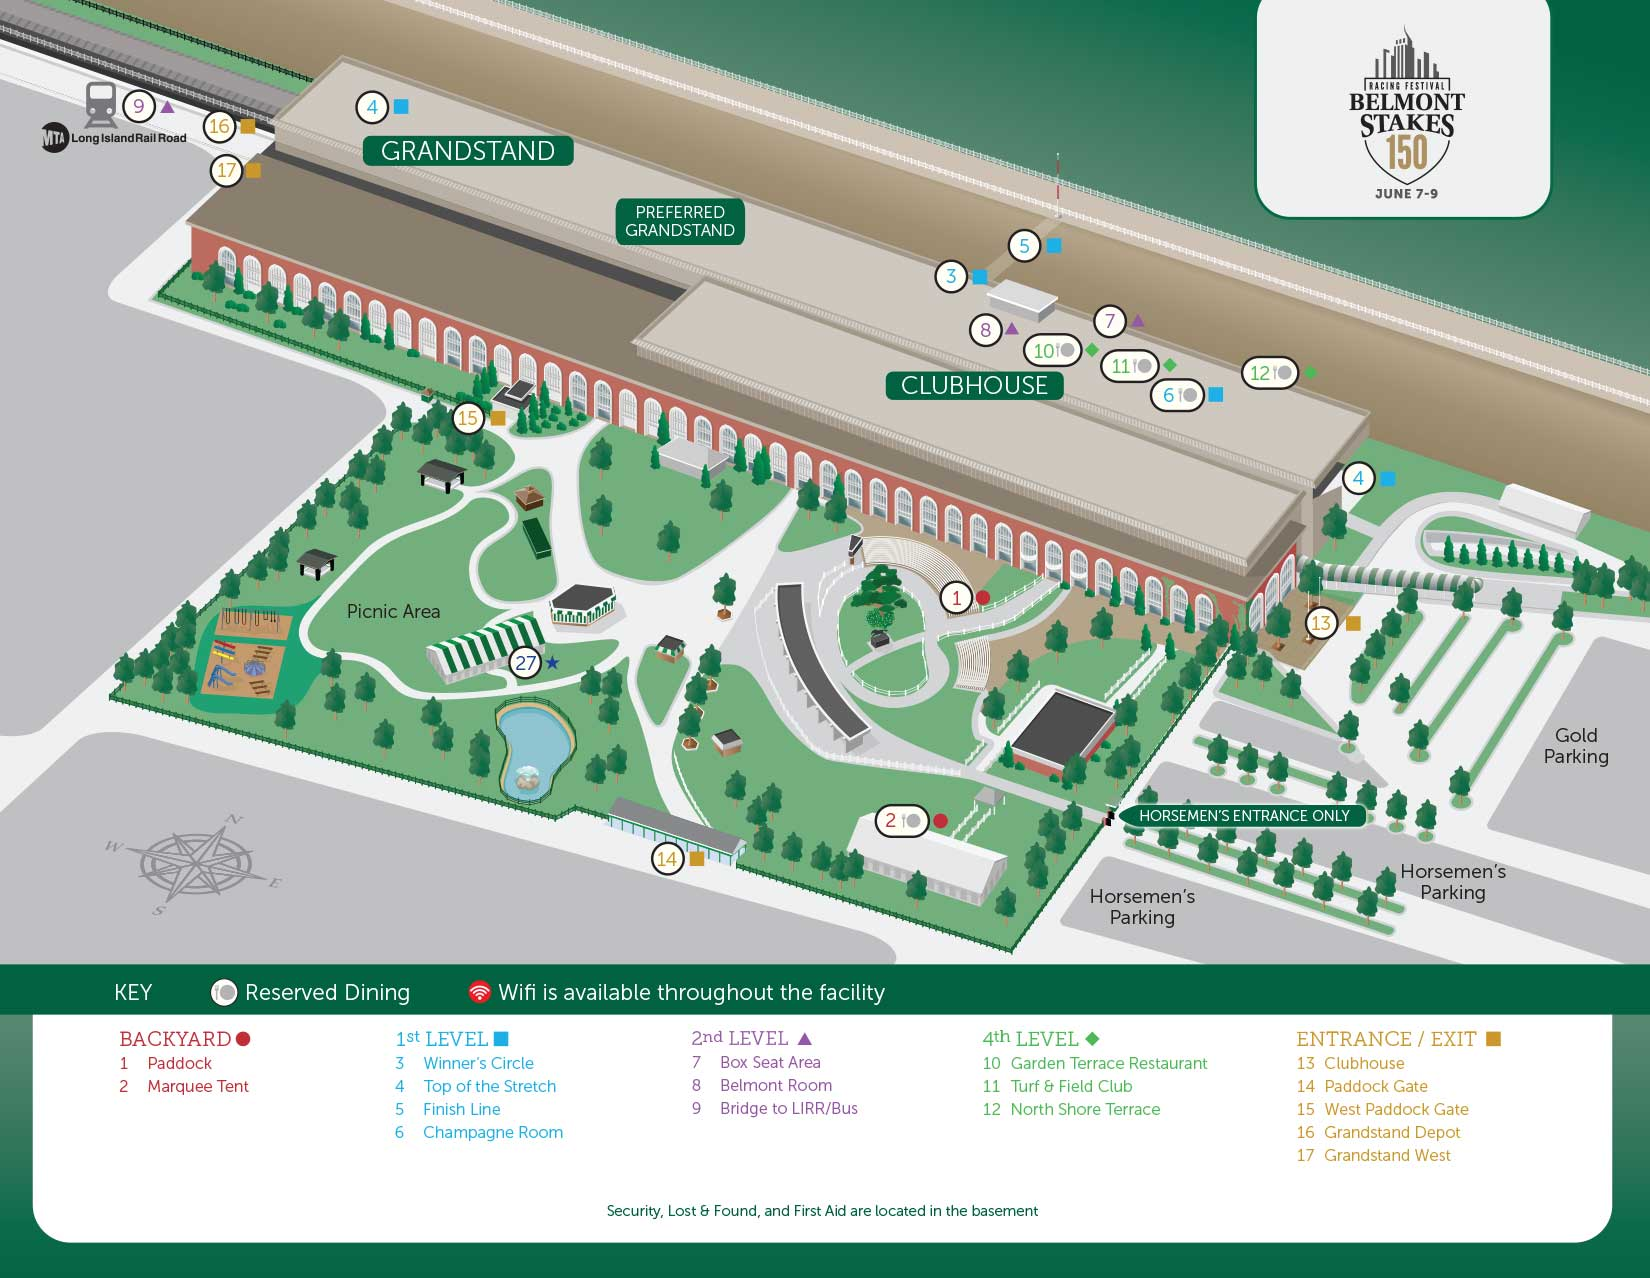 BSRF18_Large_Map grounds & seating map belmont stakes